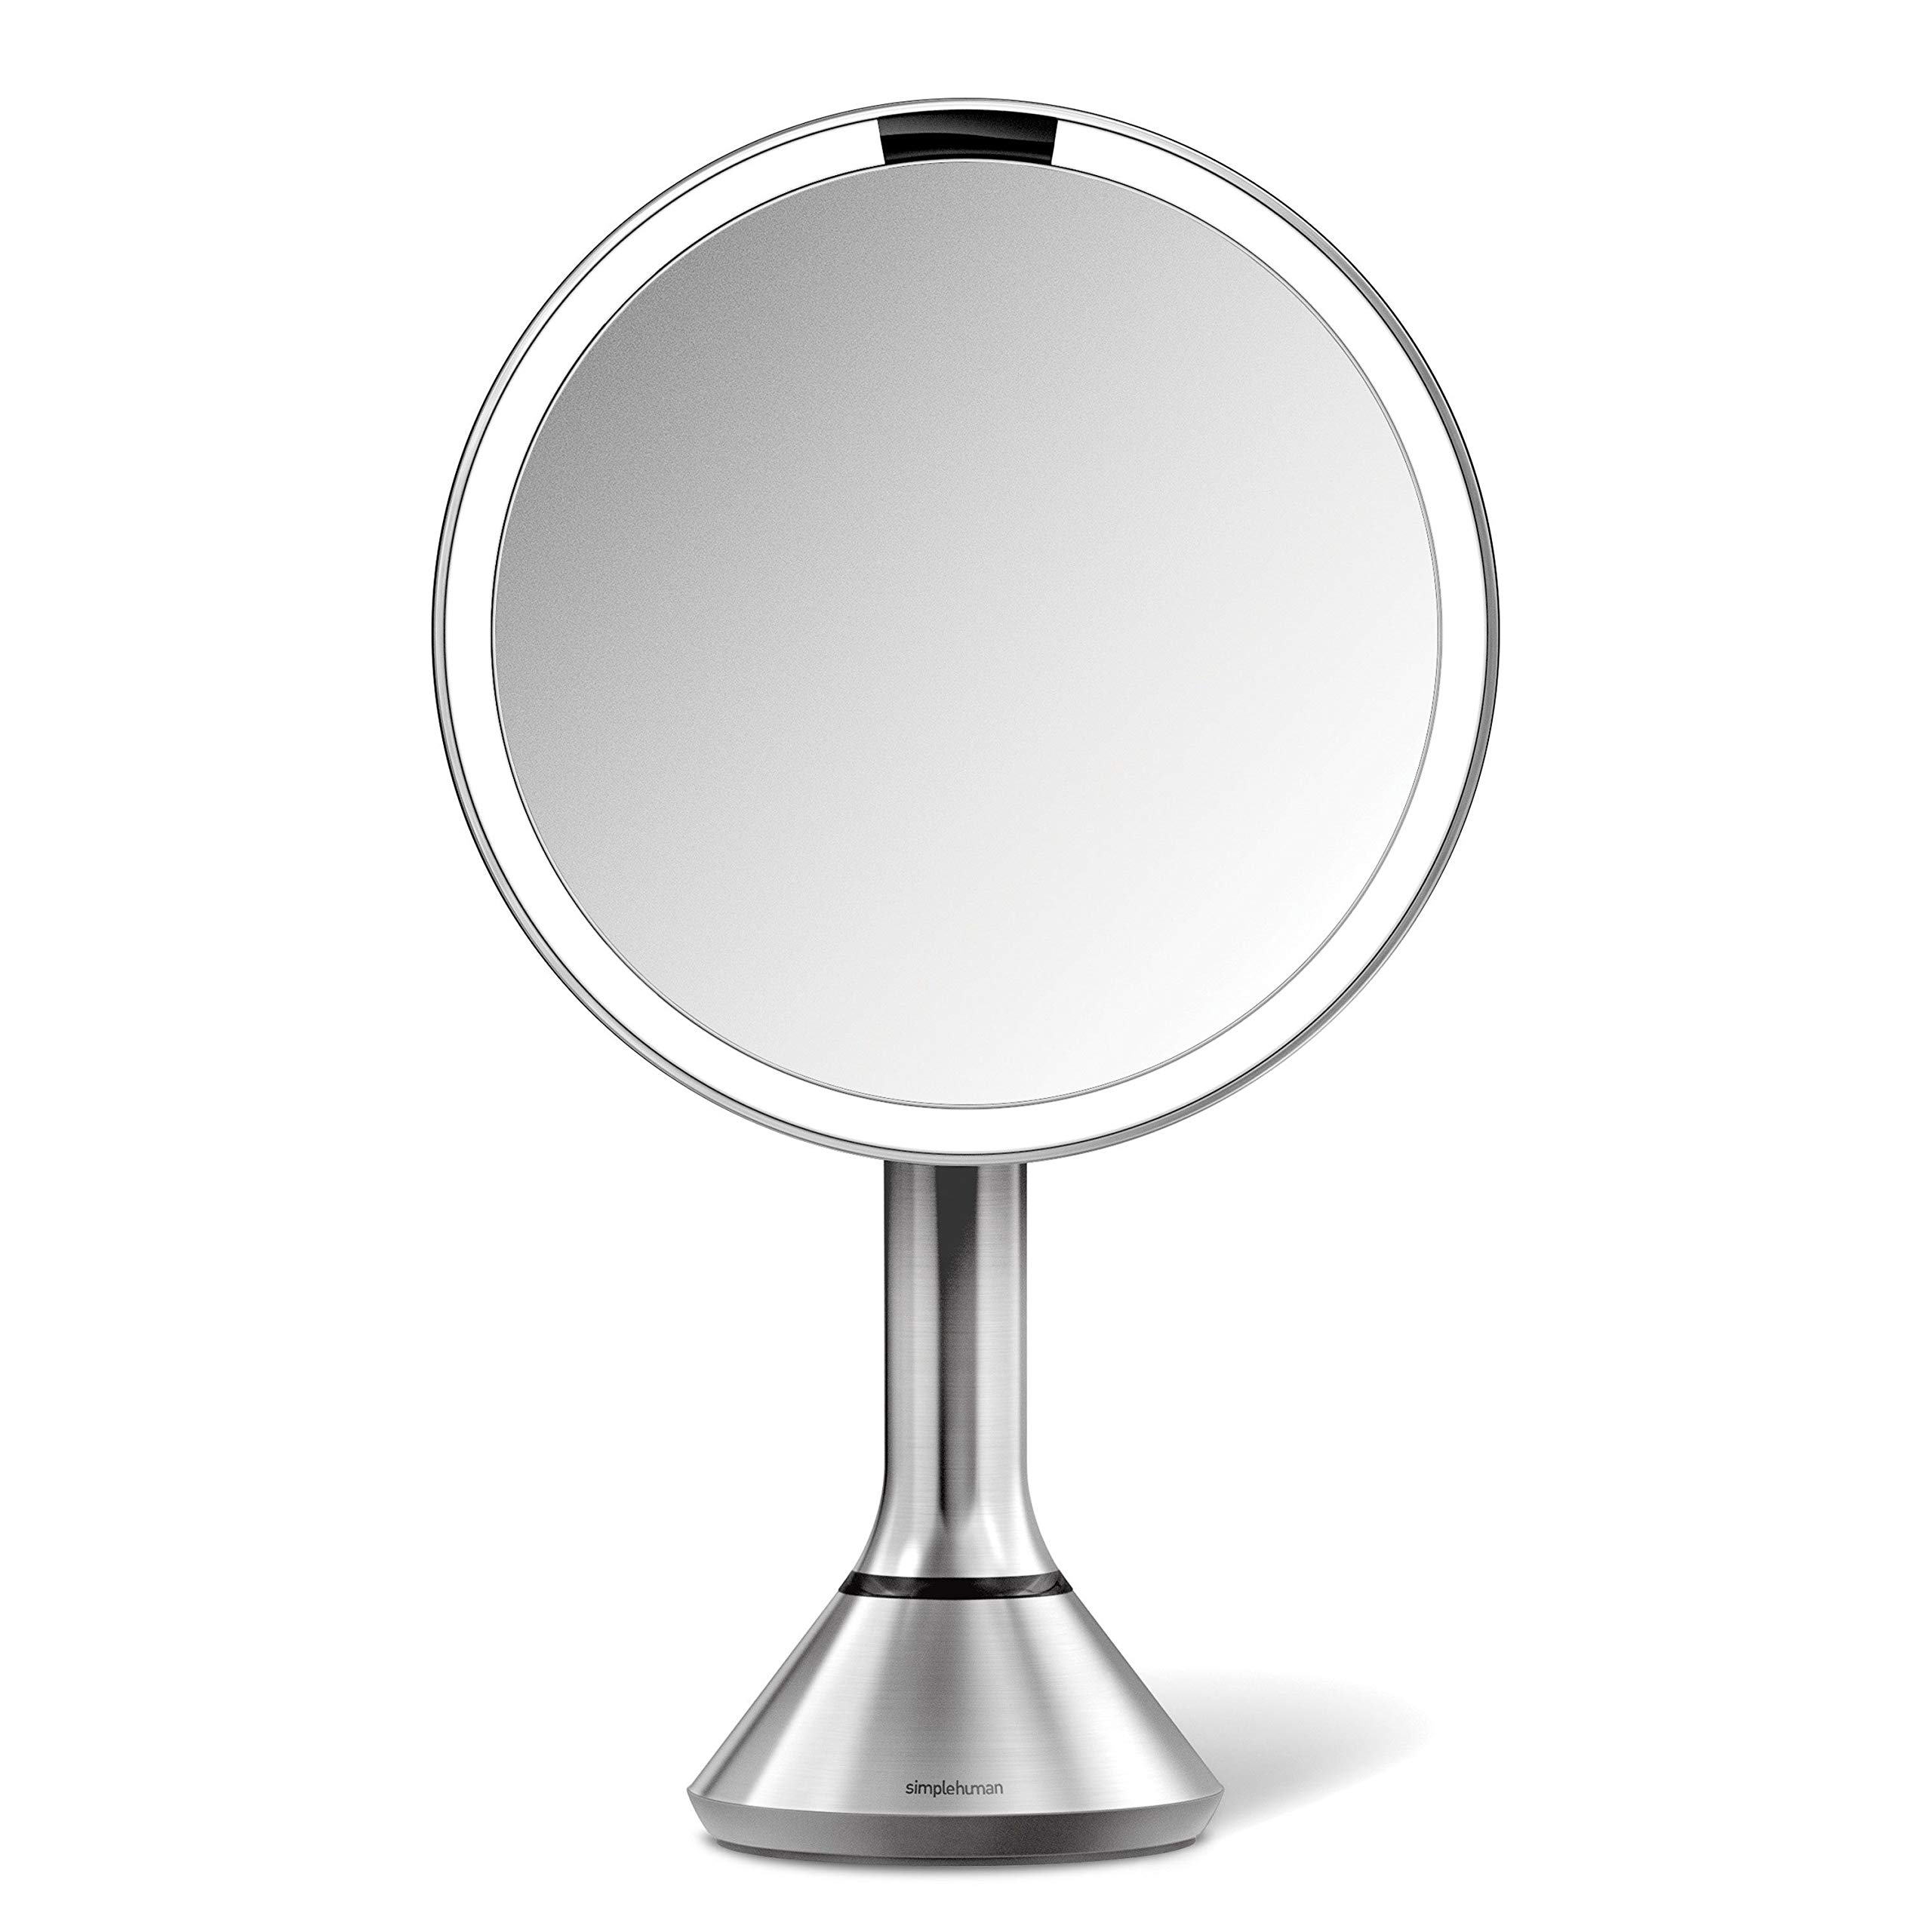 simplehuman Stainless Brightness Control Brushed